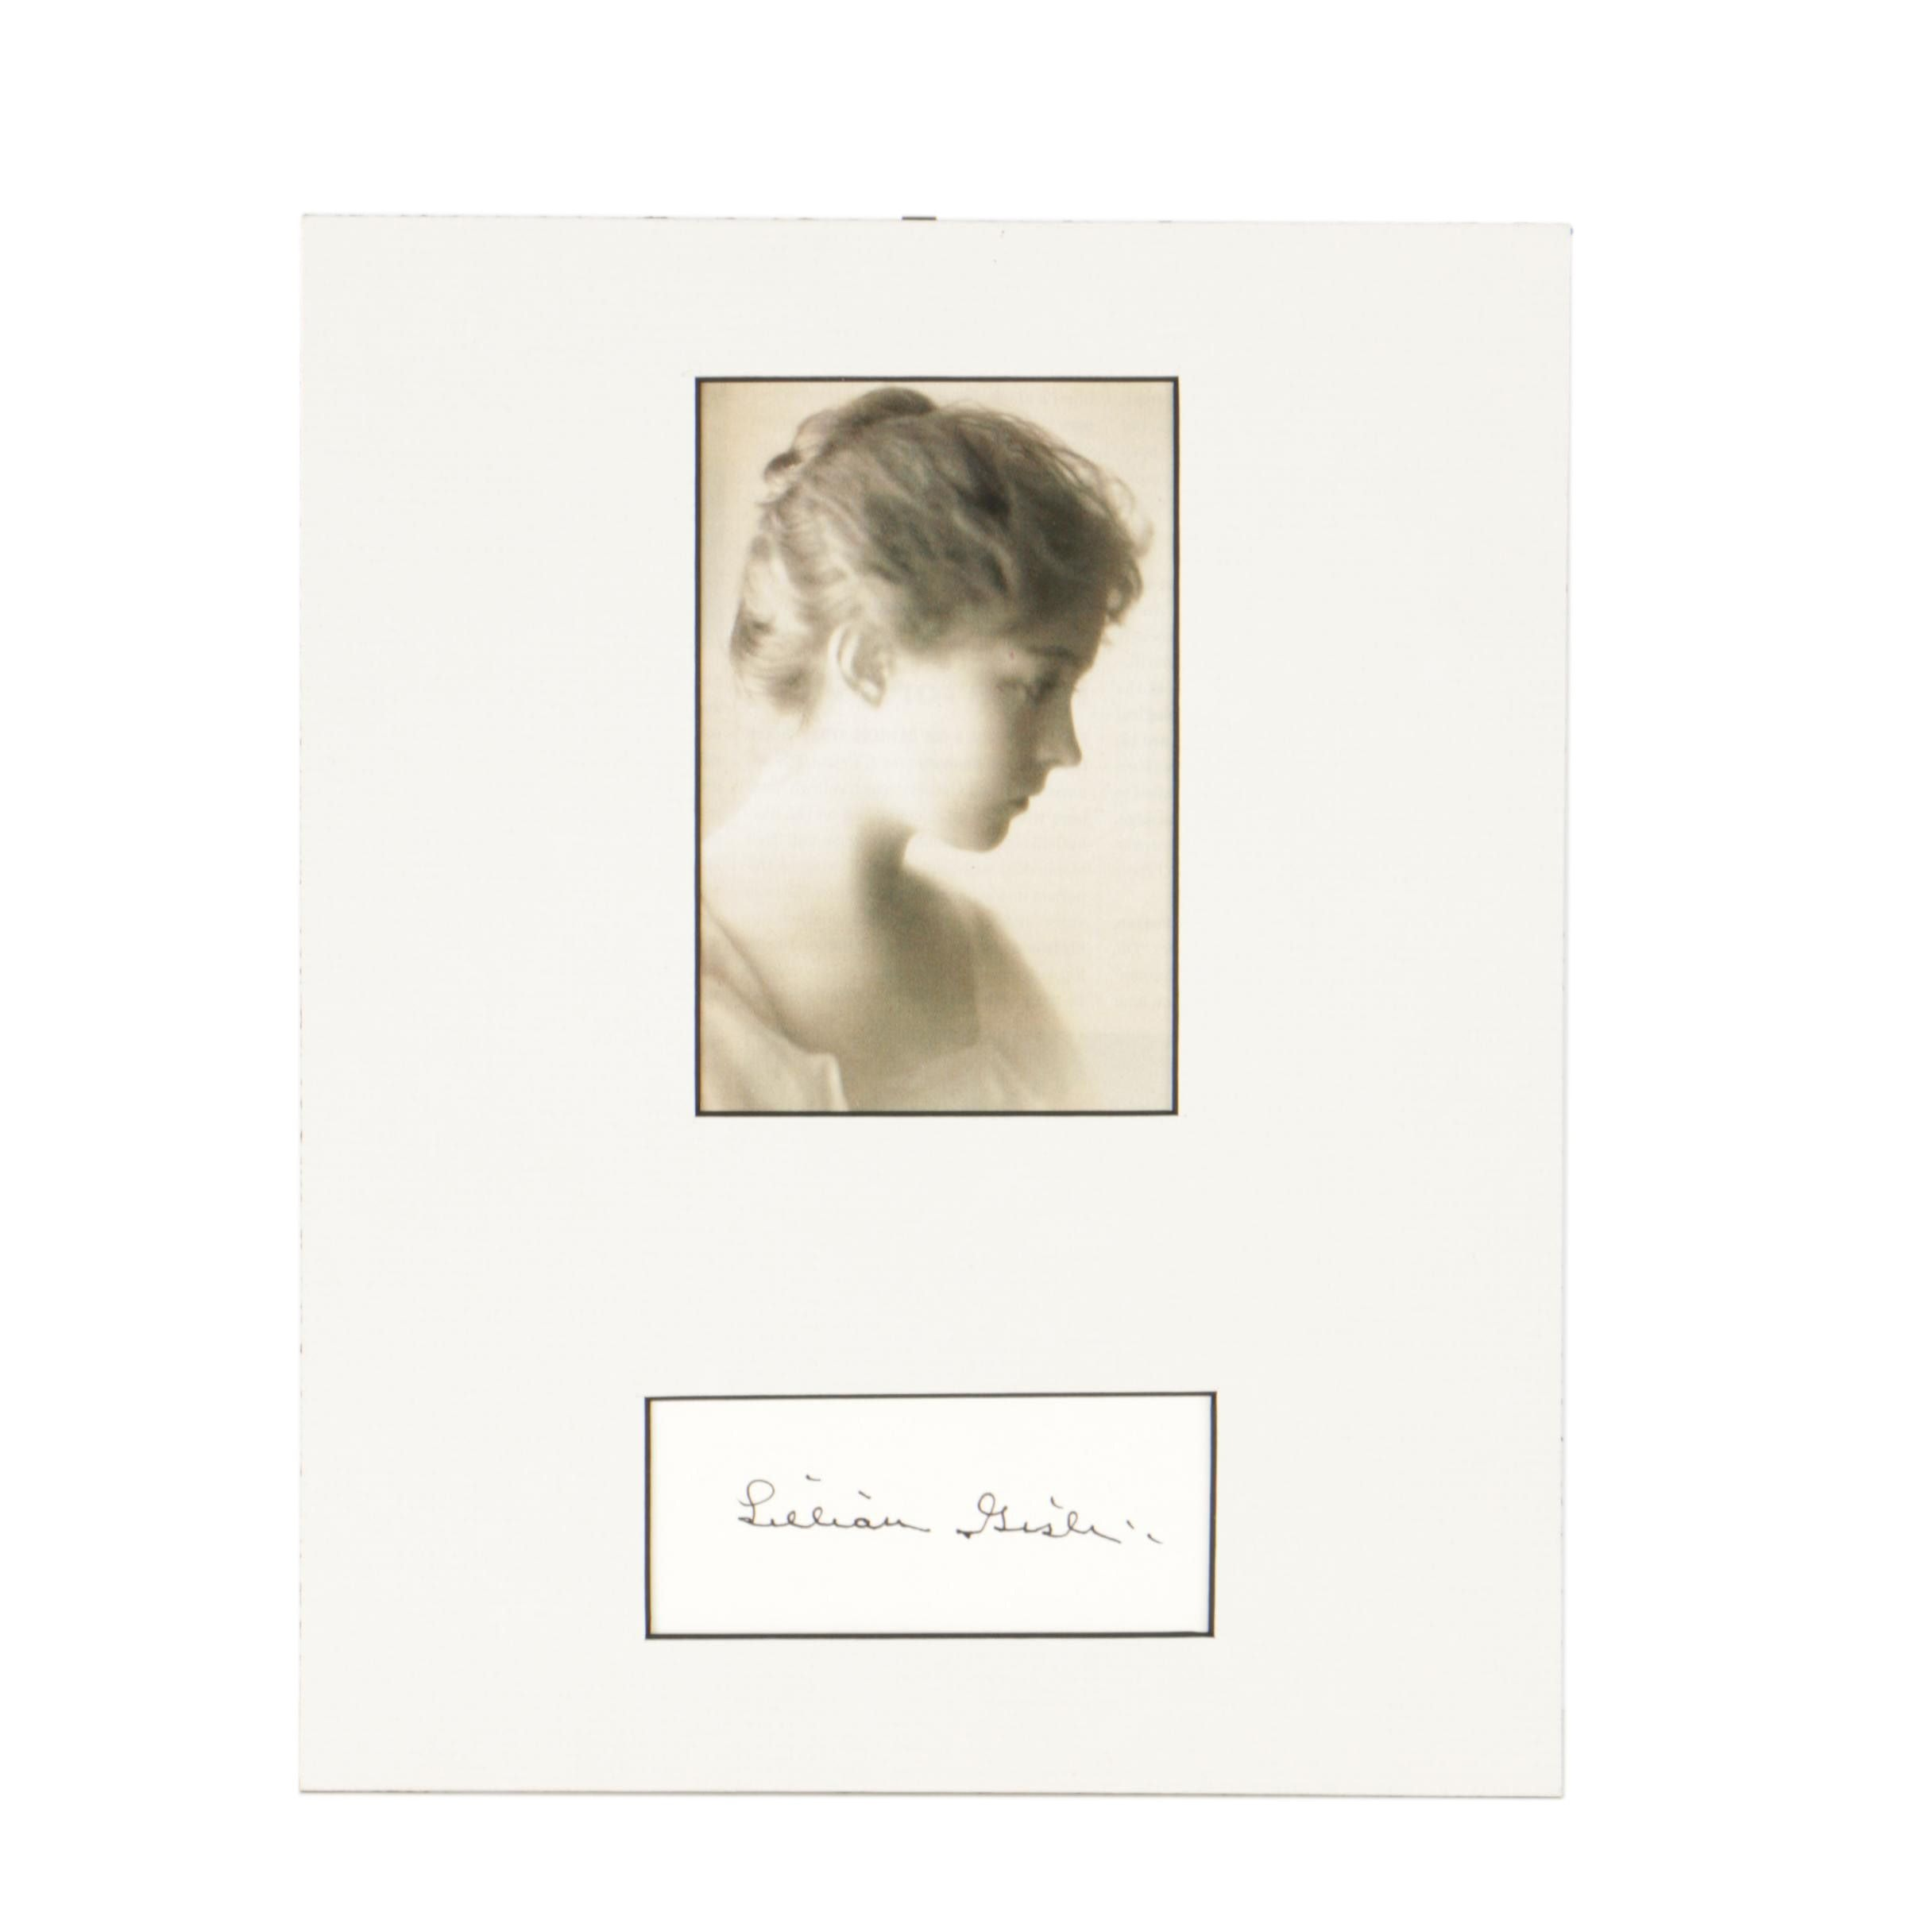 Lillian Gish Autographed Card with Print